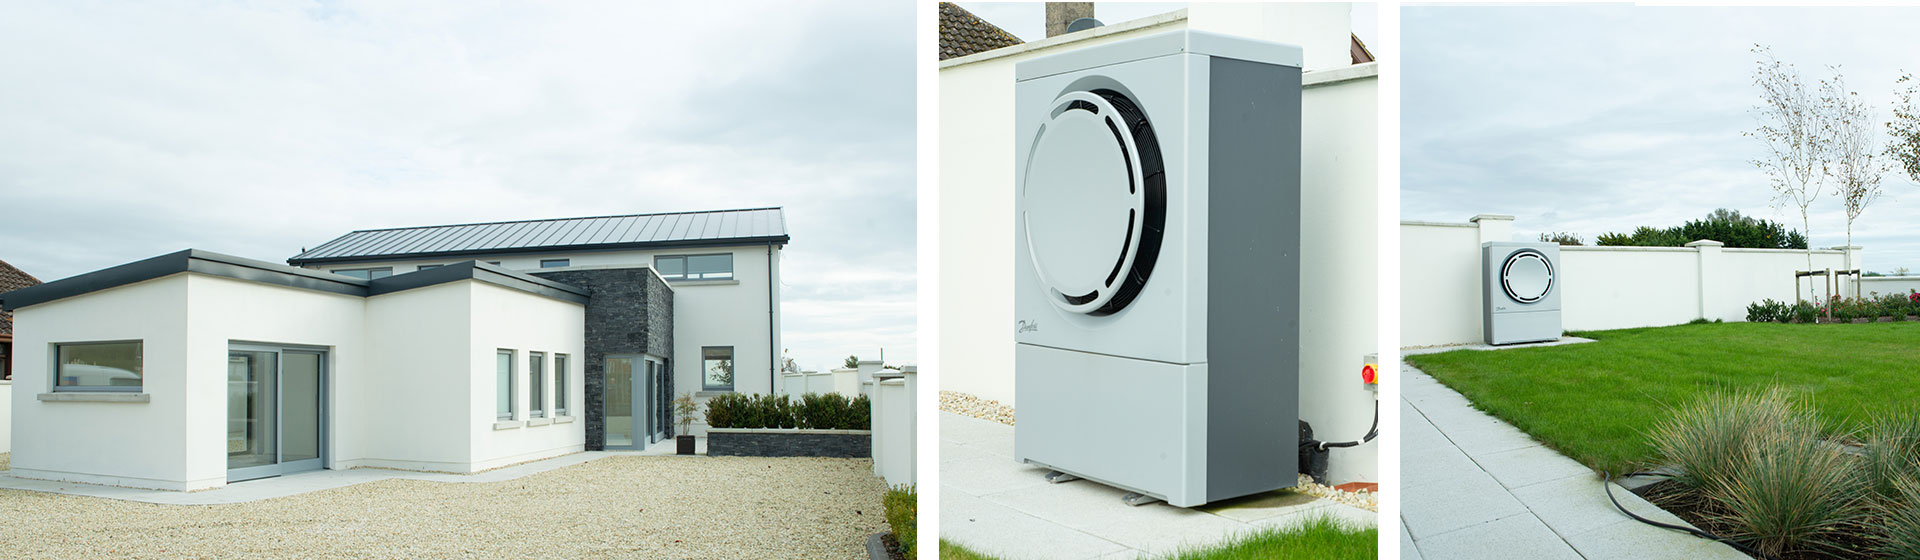 Luxury Home, Blackrock, Co. Louth - 16kW Air to Water Heat Pump Installed